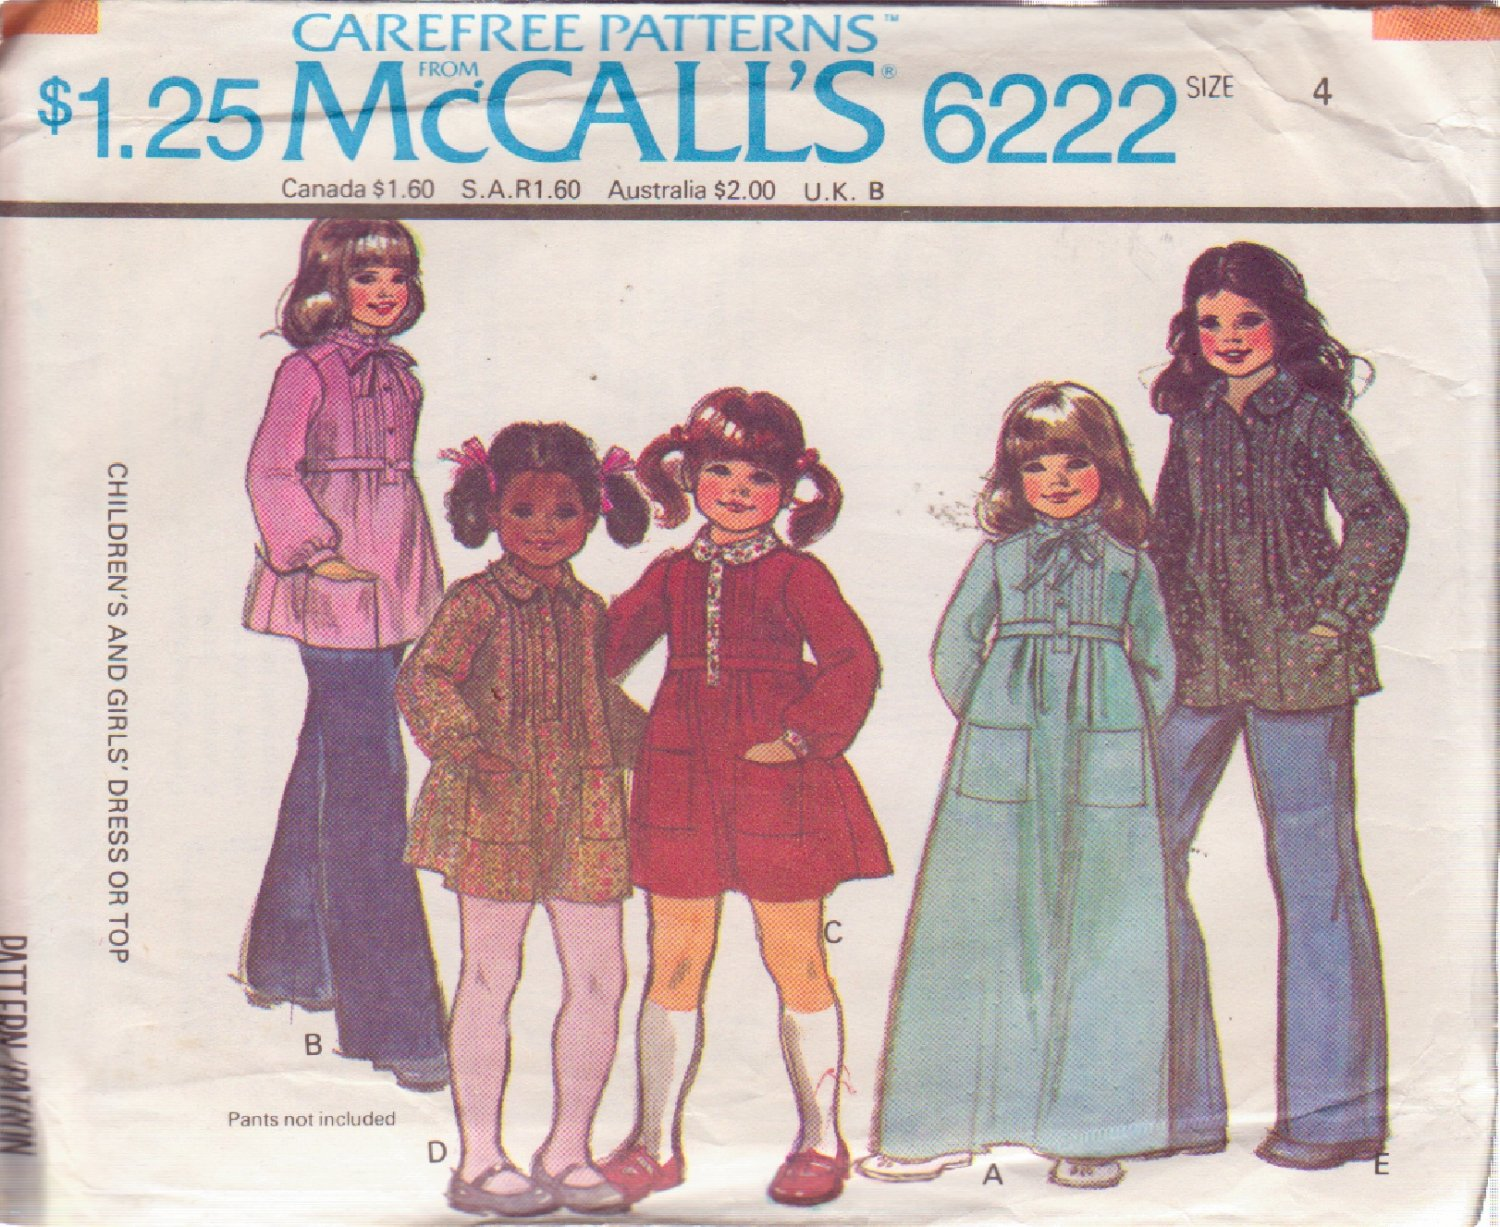 McCALL'S PATTERN 6222 SIZE 4 GIRLS' DRESS IN 2 LENGTHS, TOP IN 2 VARIATIONS